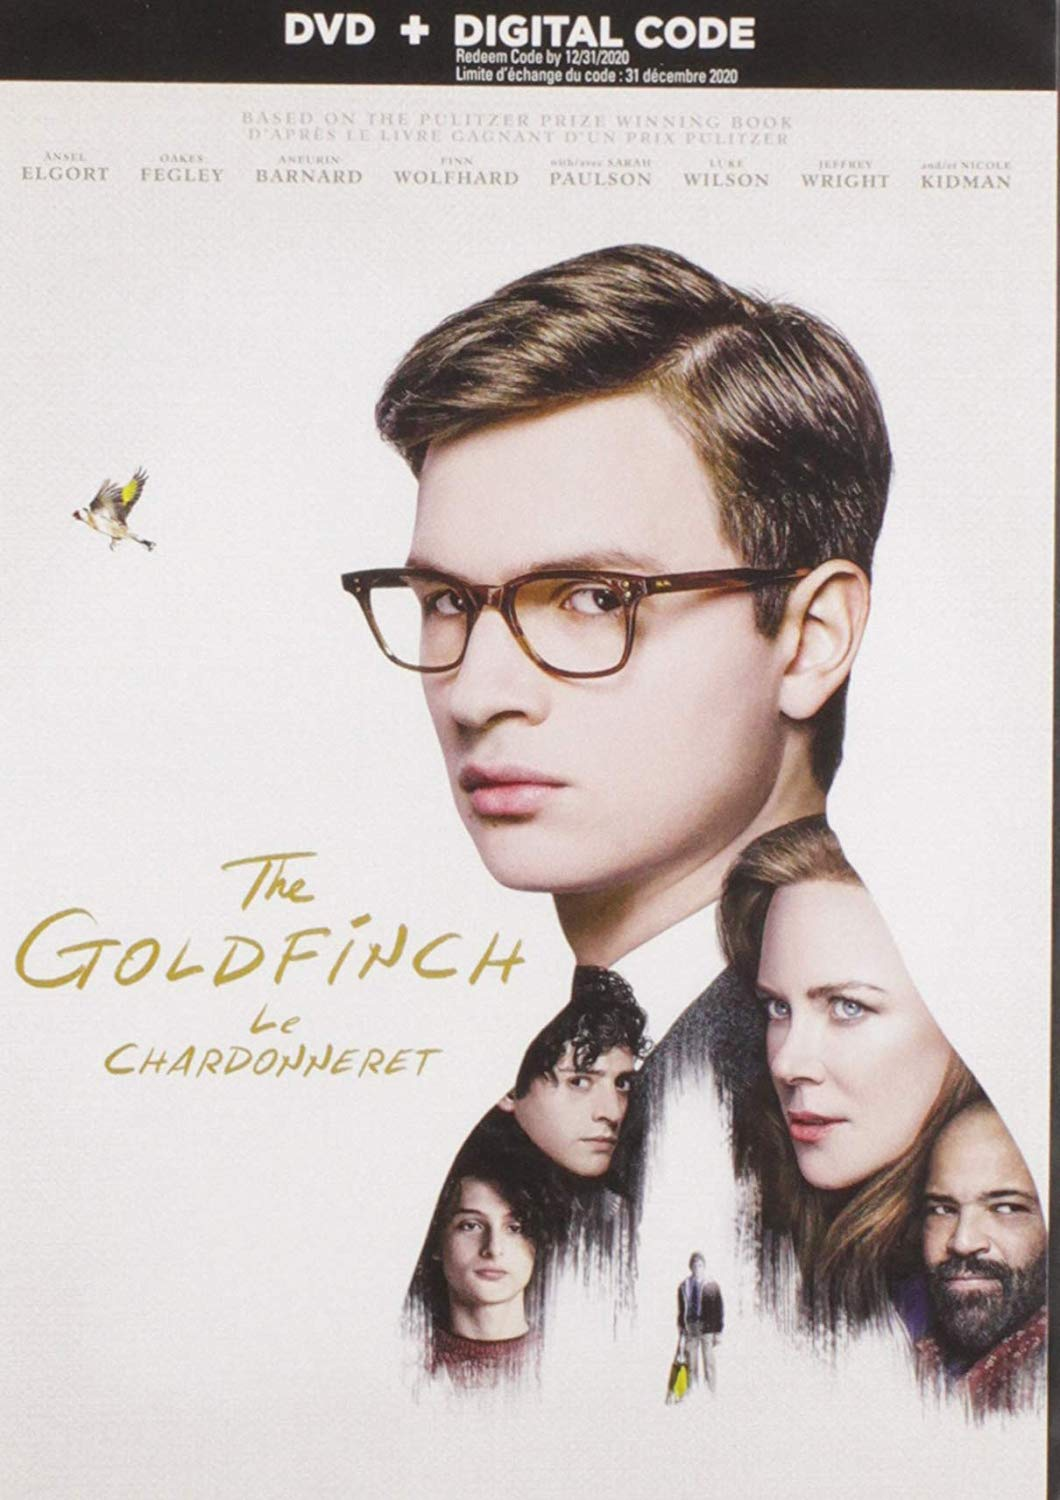 DVD: The Goldfinch